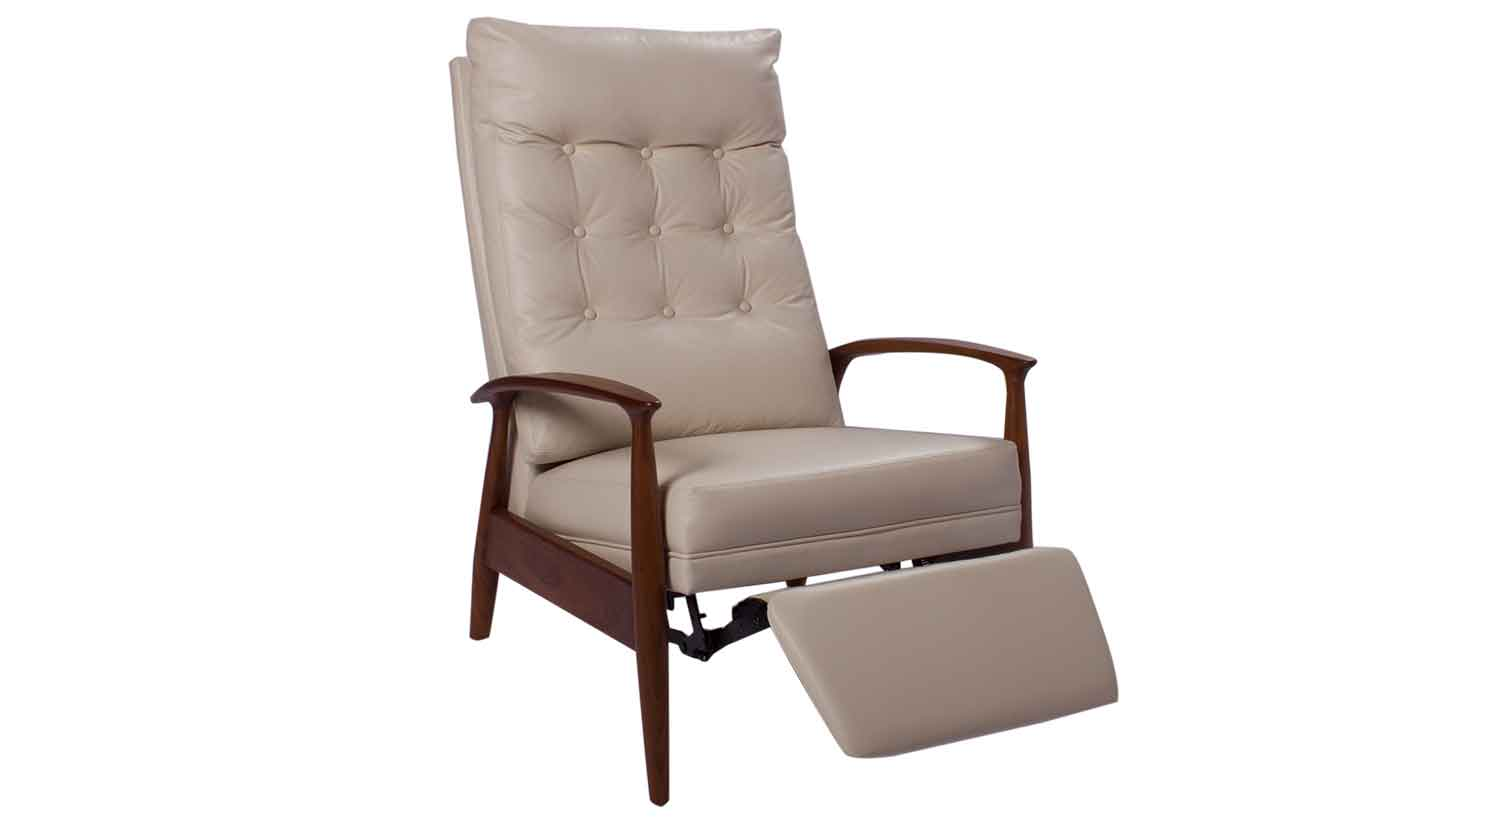 Viceroy Recliner Viceroy Recliner Viceroy Recliner Viceroy Recliner Viceroy  Recliner